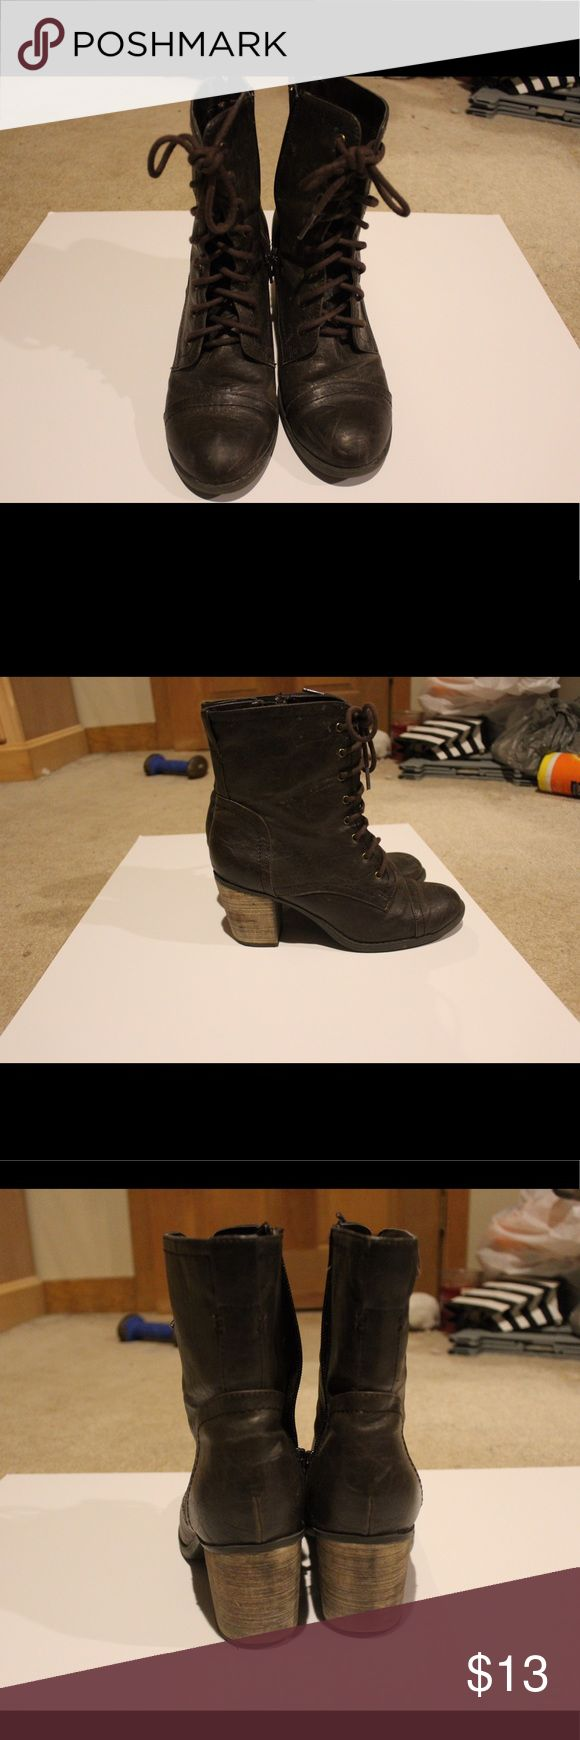 Steve Madden Boots with small heel! Brown rustic looking boots. Worn very few times. Lace up, combat boot style, but with a small heel. Adorable. Steve Madden Shoes Lace Up Boots